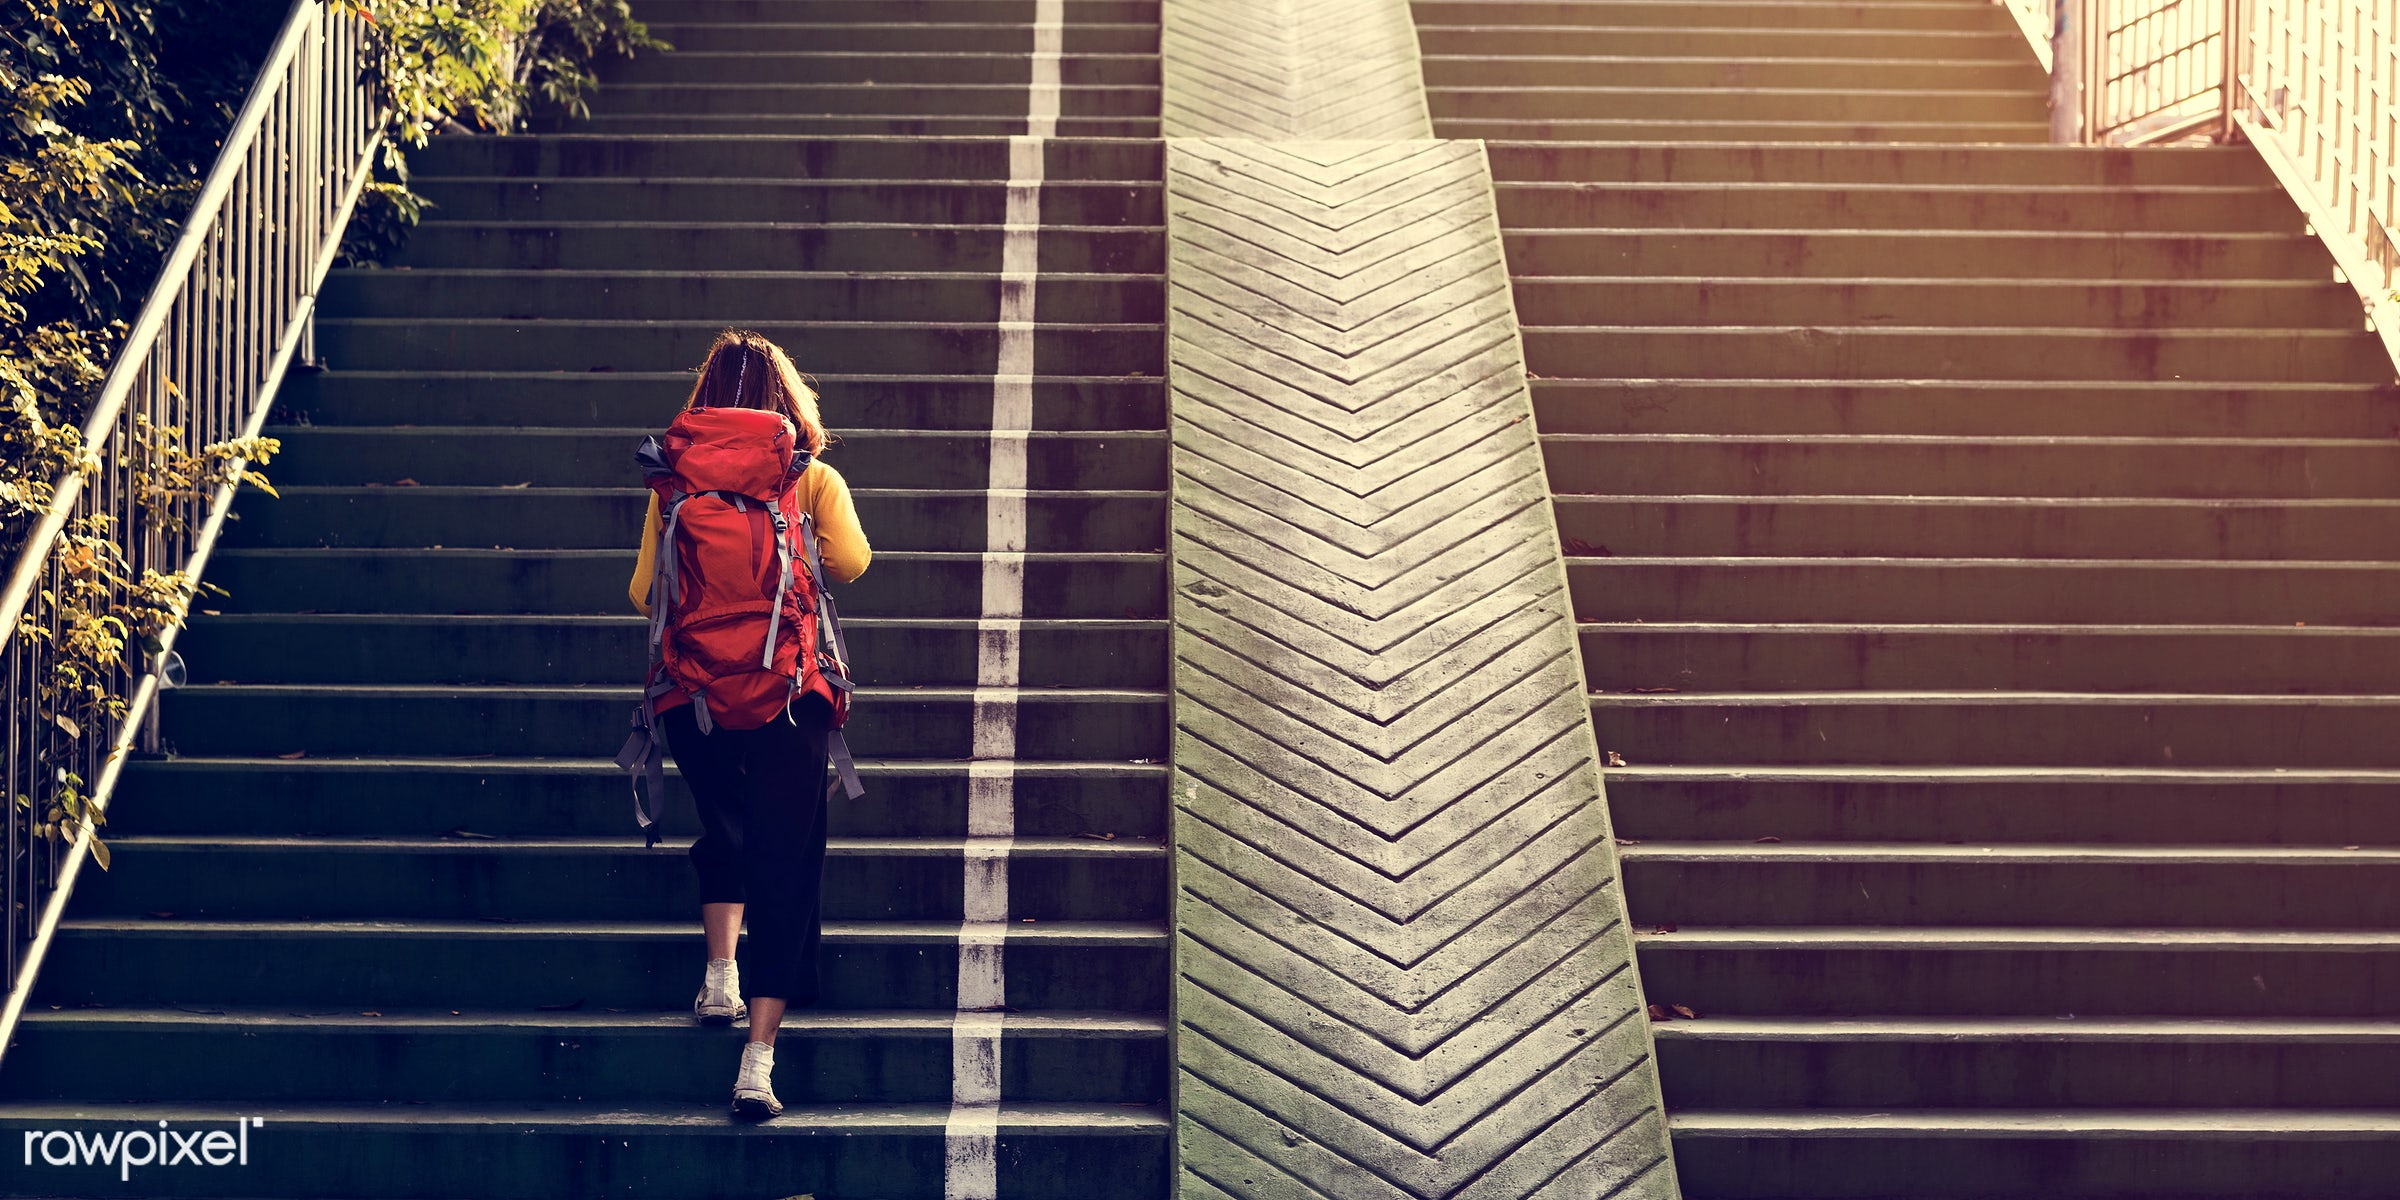 girl, woman, travel, wanderlust, backpack, walking, stairs, staircase, alone, solo, outdoors, up, person